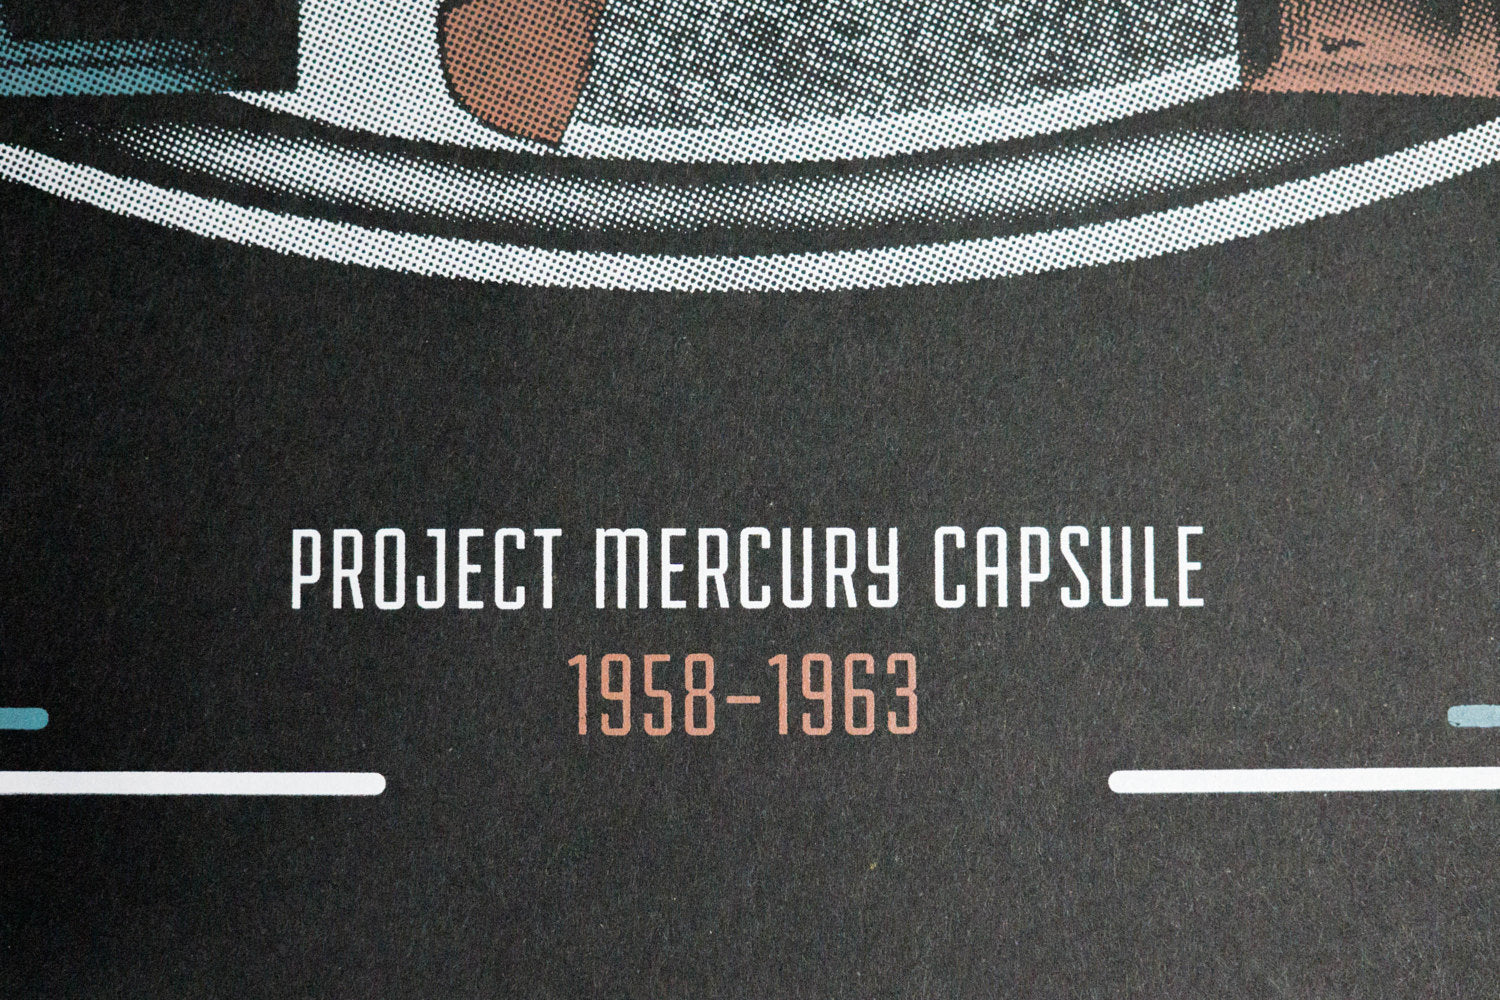 Project Mercury Capsule - Space Exploration Poster